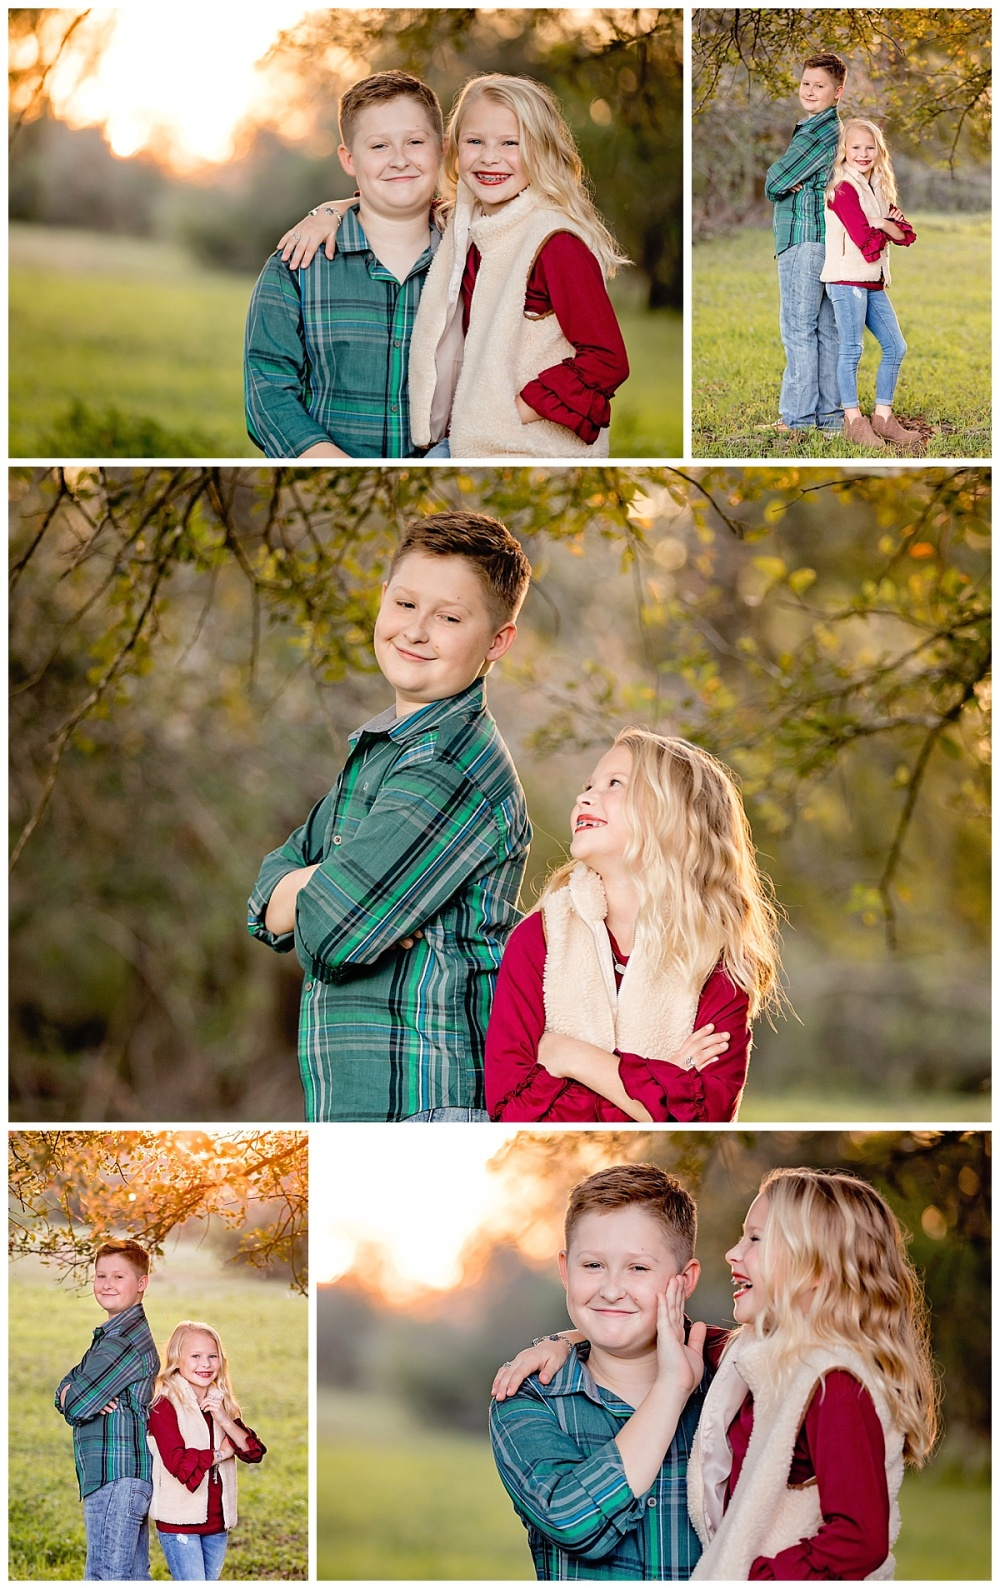 Family-Photographer-LaVernia-Texas-Fall-Sunset-Carly-Barton-Photography_0008.jpg